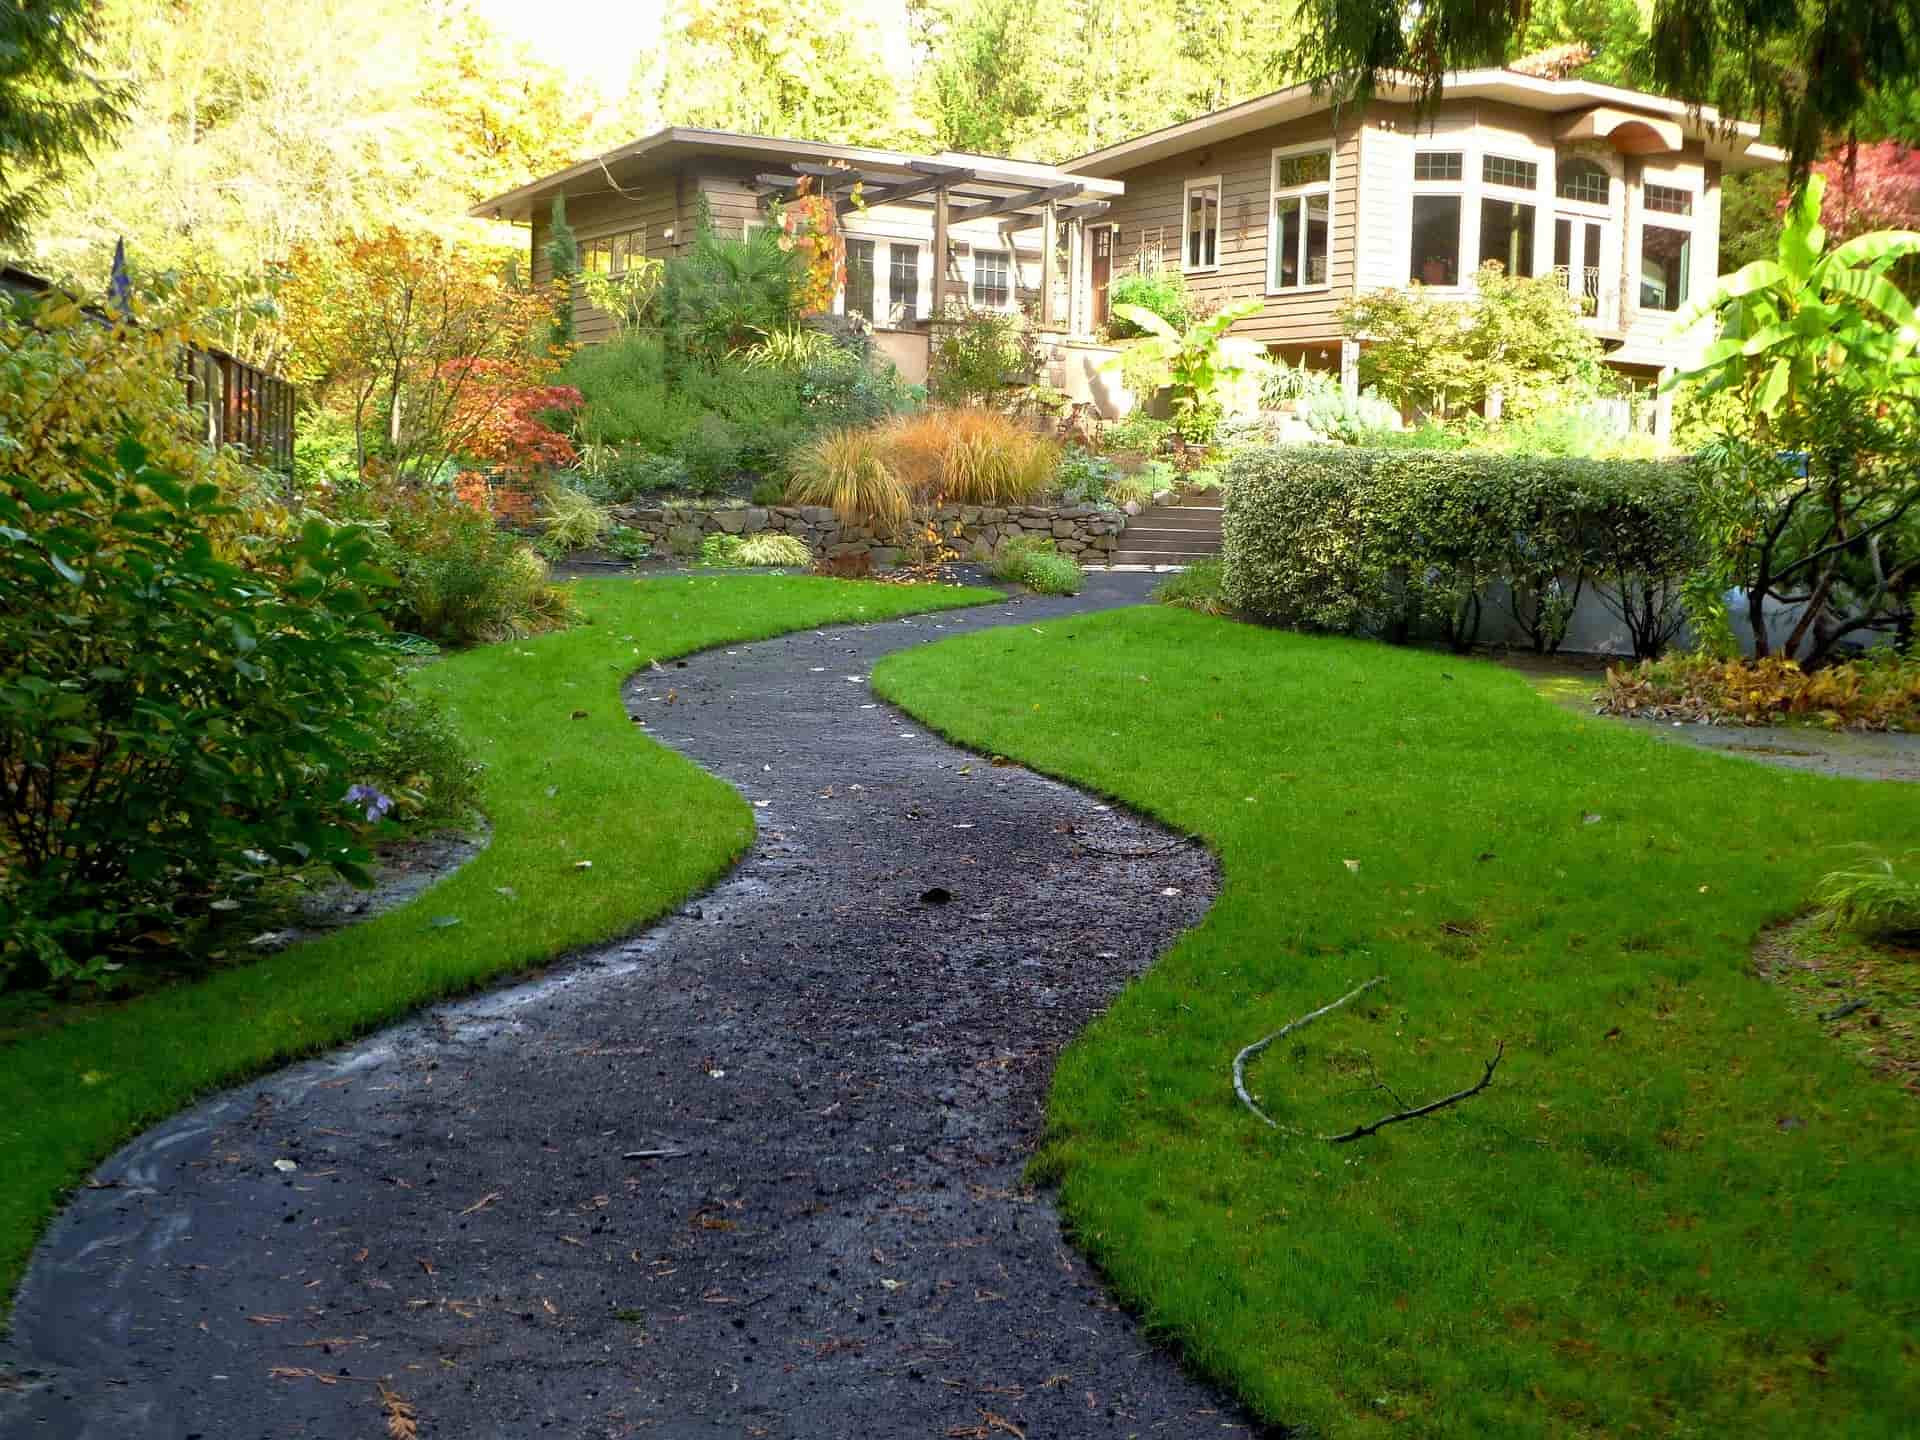 Landscaping Your Garden? Follow These 8 Rules – Amir Articles